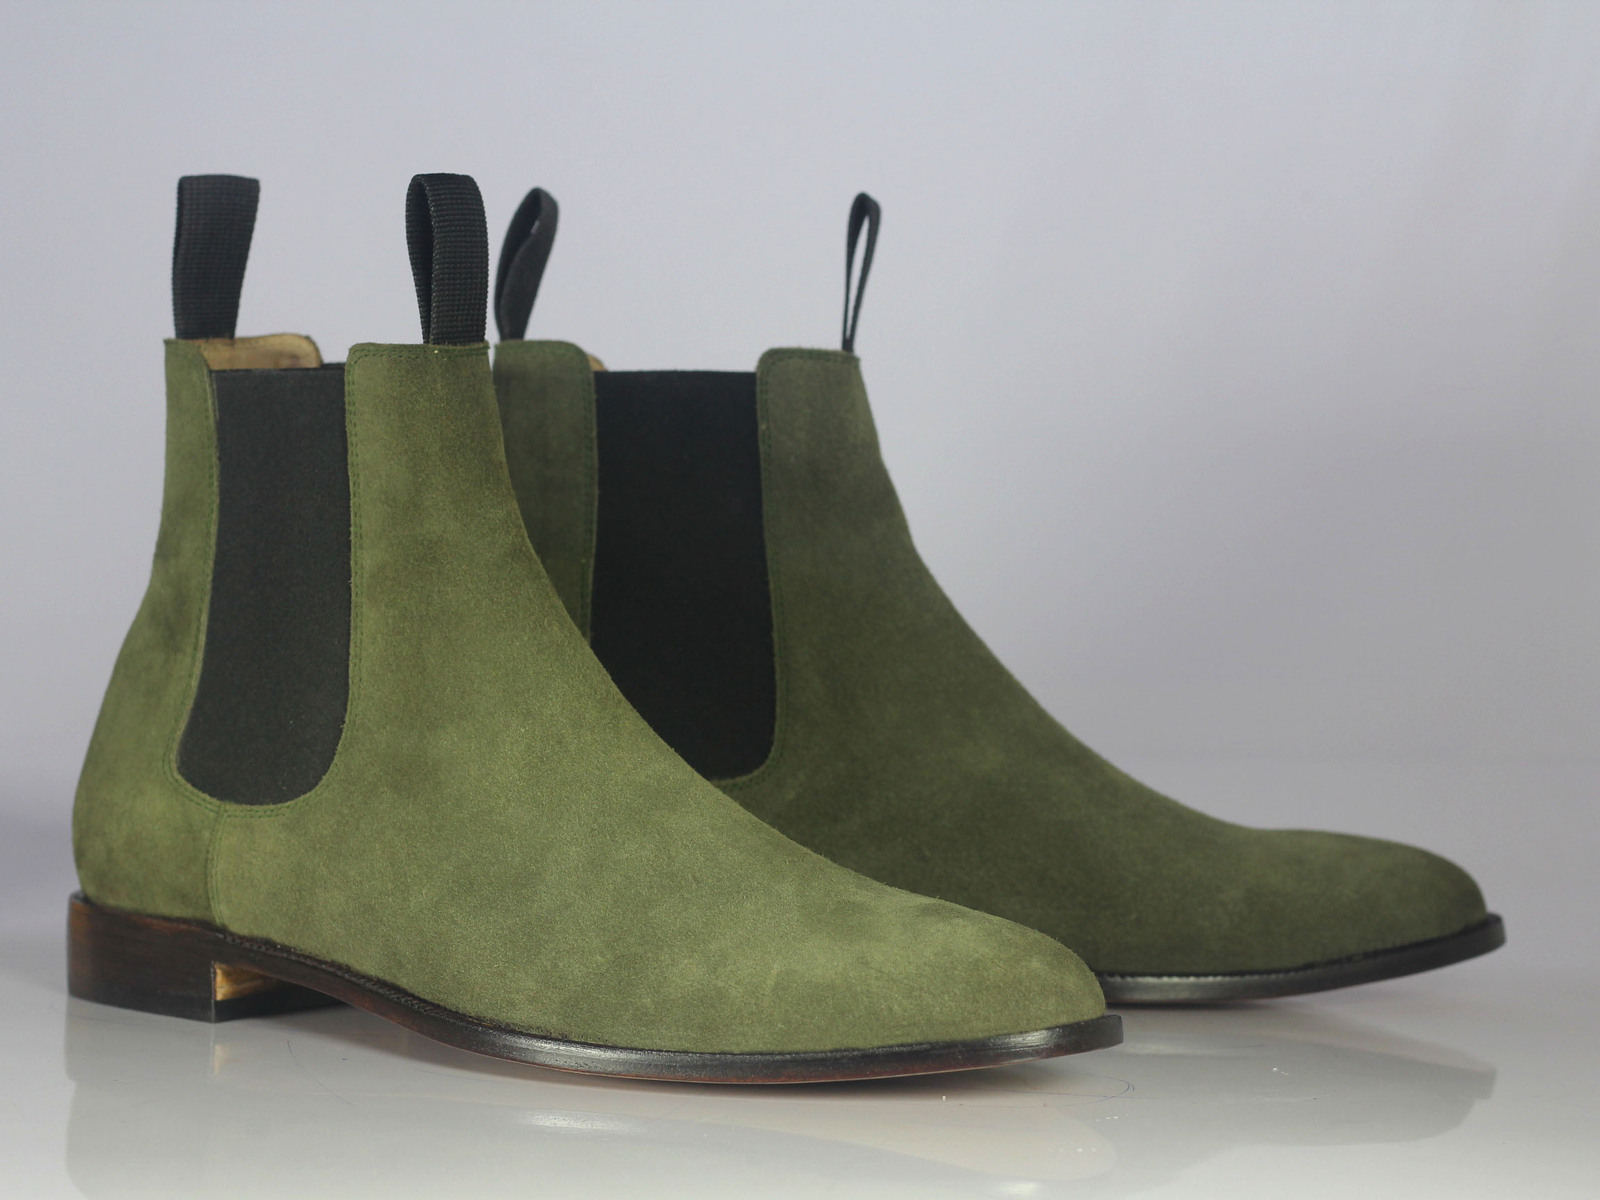 Handmade Men's Green Suede High Ankle Chelsea Boots